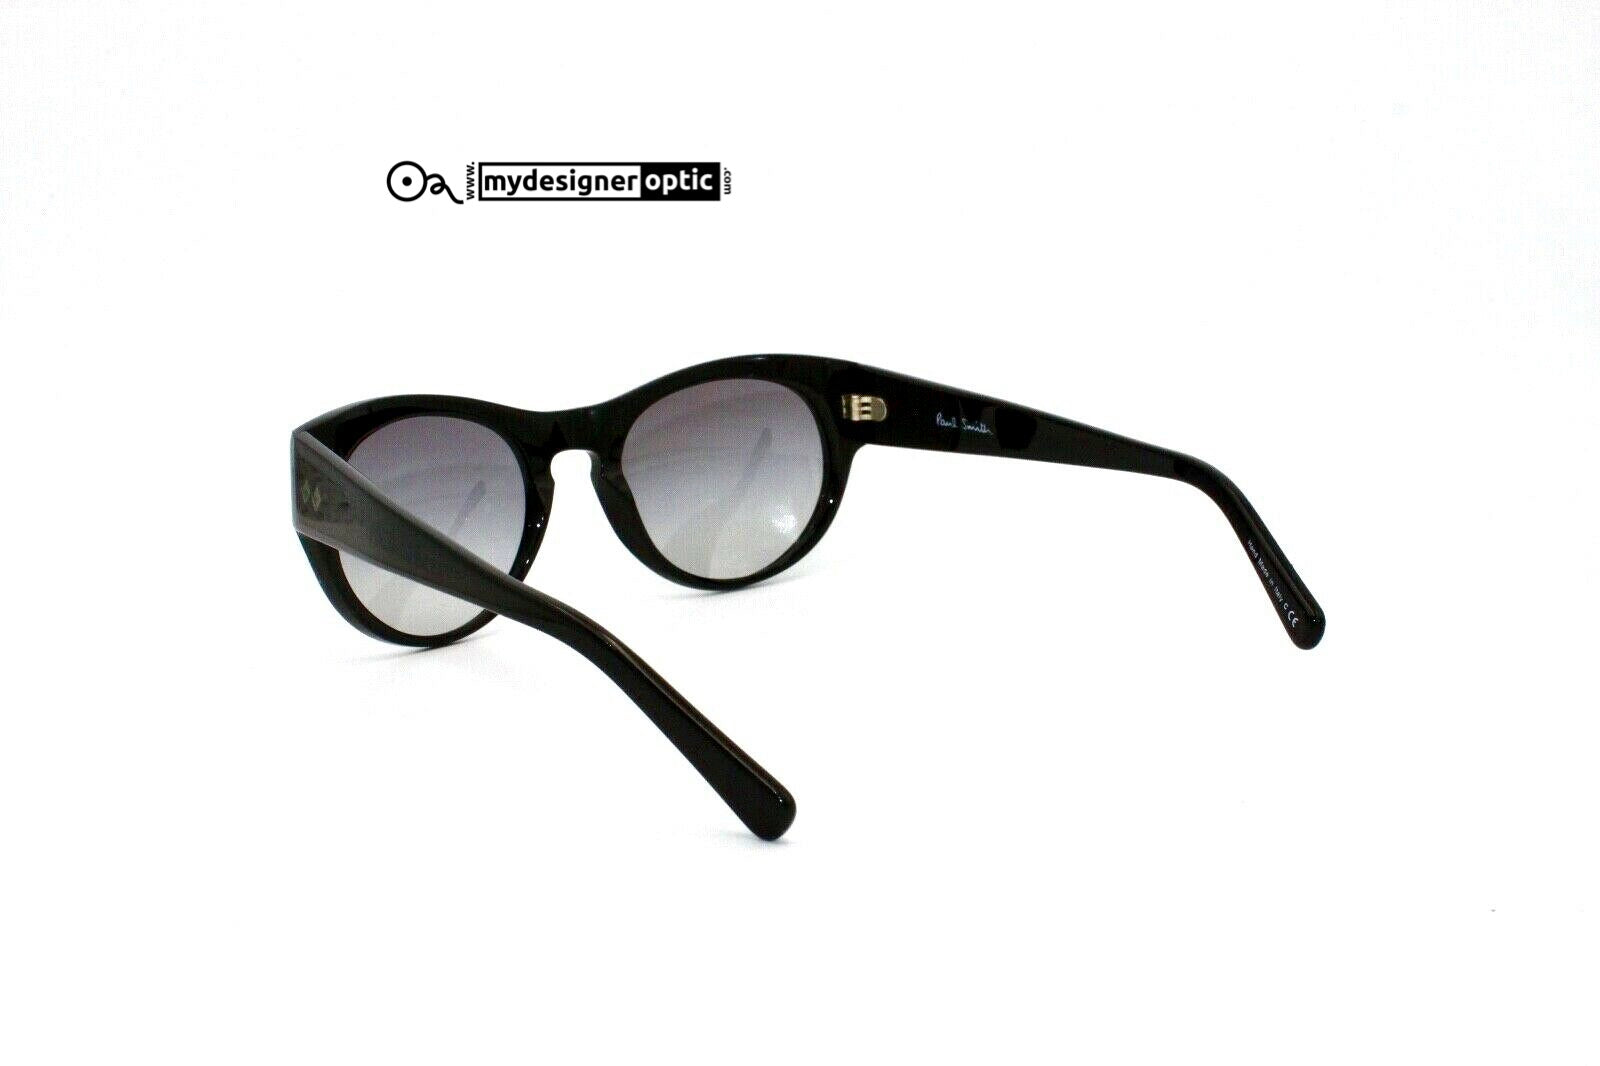 Paul Smith Sunglasses PM 8086-S 1005/11 Develay 52-21 140 2N Hand Made in Italy - Mydesigneroptic